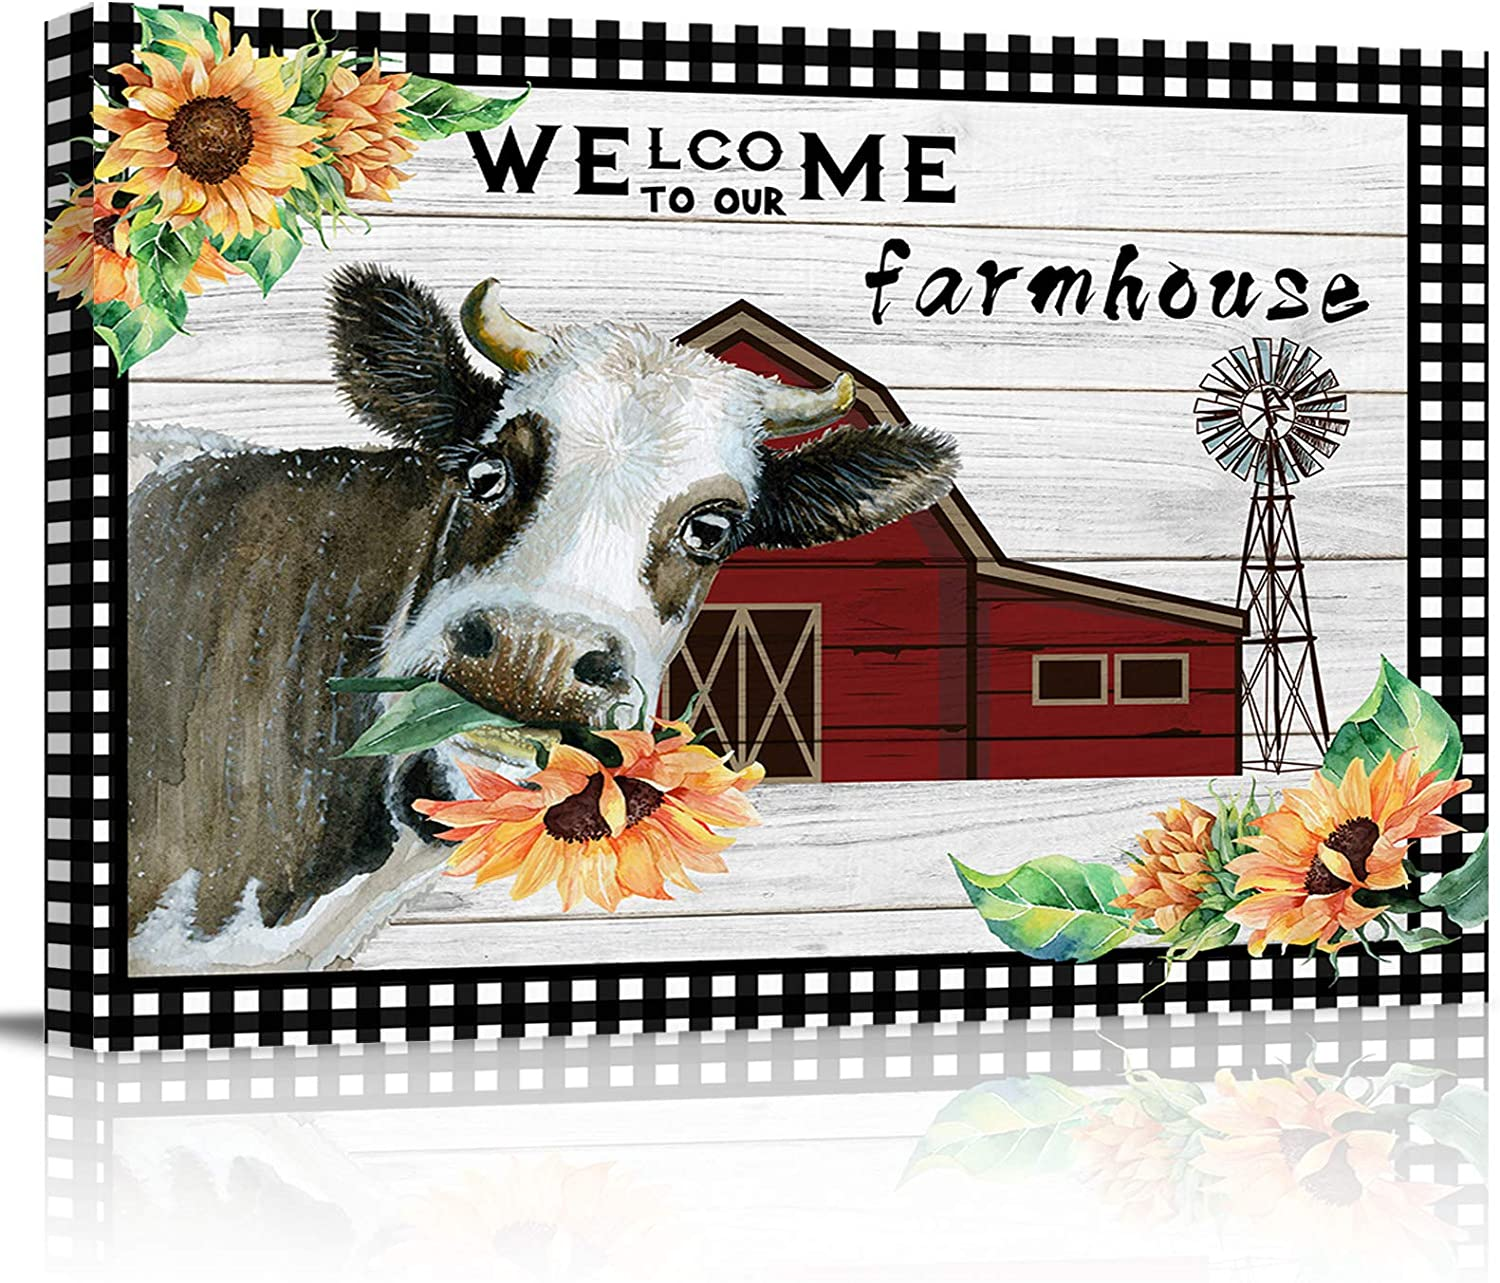 LooPoP Art Print on Canvas Pictures for Bedroom Farm Cow Wall Decor Canvas Posters for Boys Nursery Decor No Frame Sunflower Rustic Barn Wood Country Style Farmhouse 12x16 inch